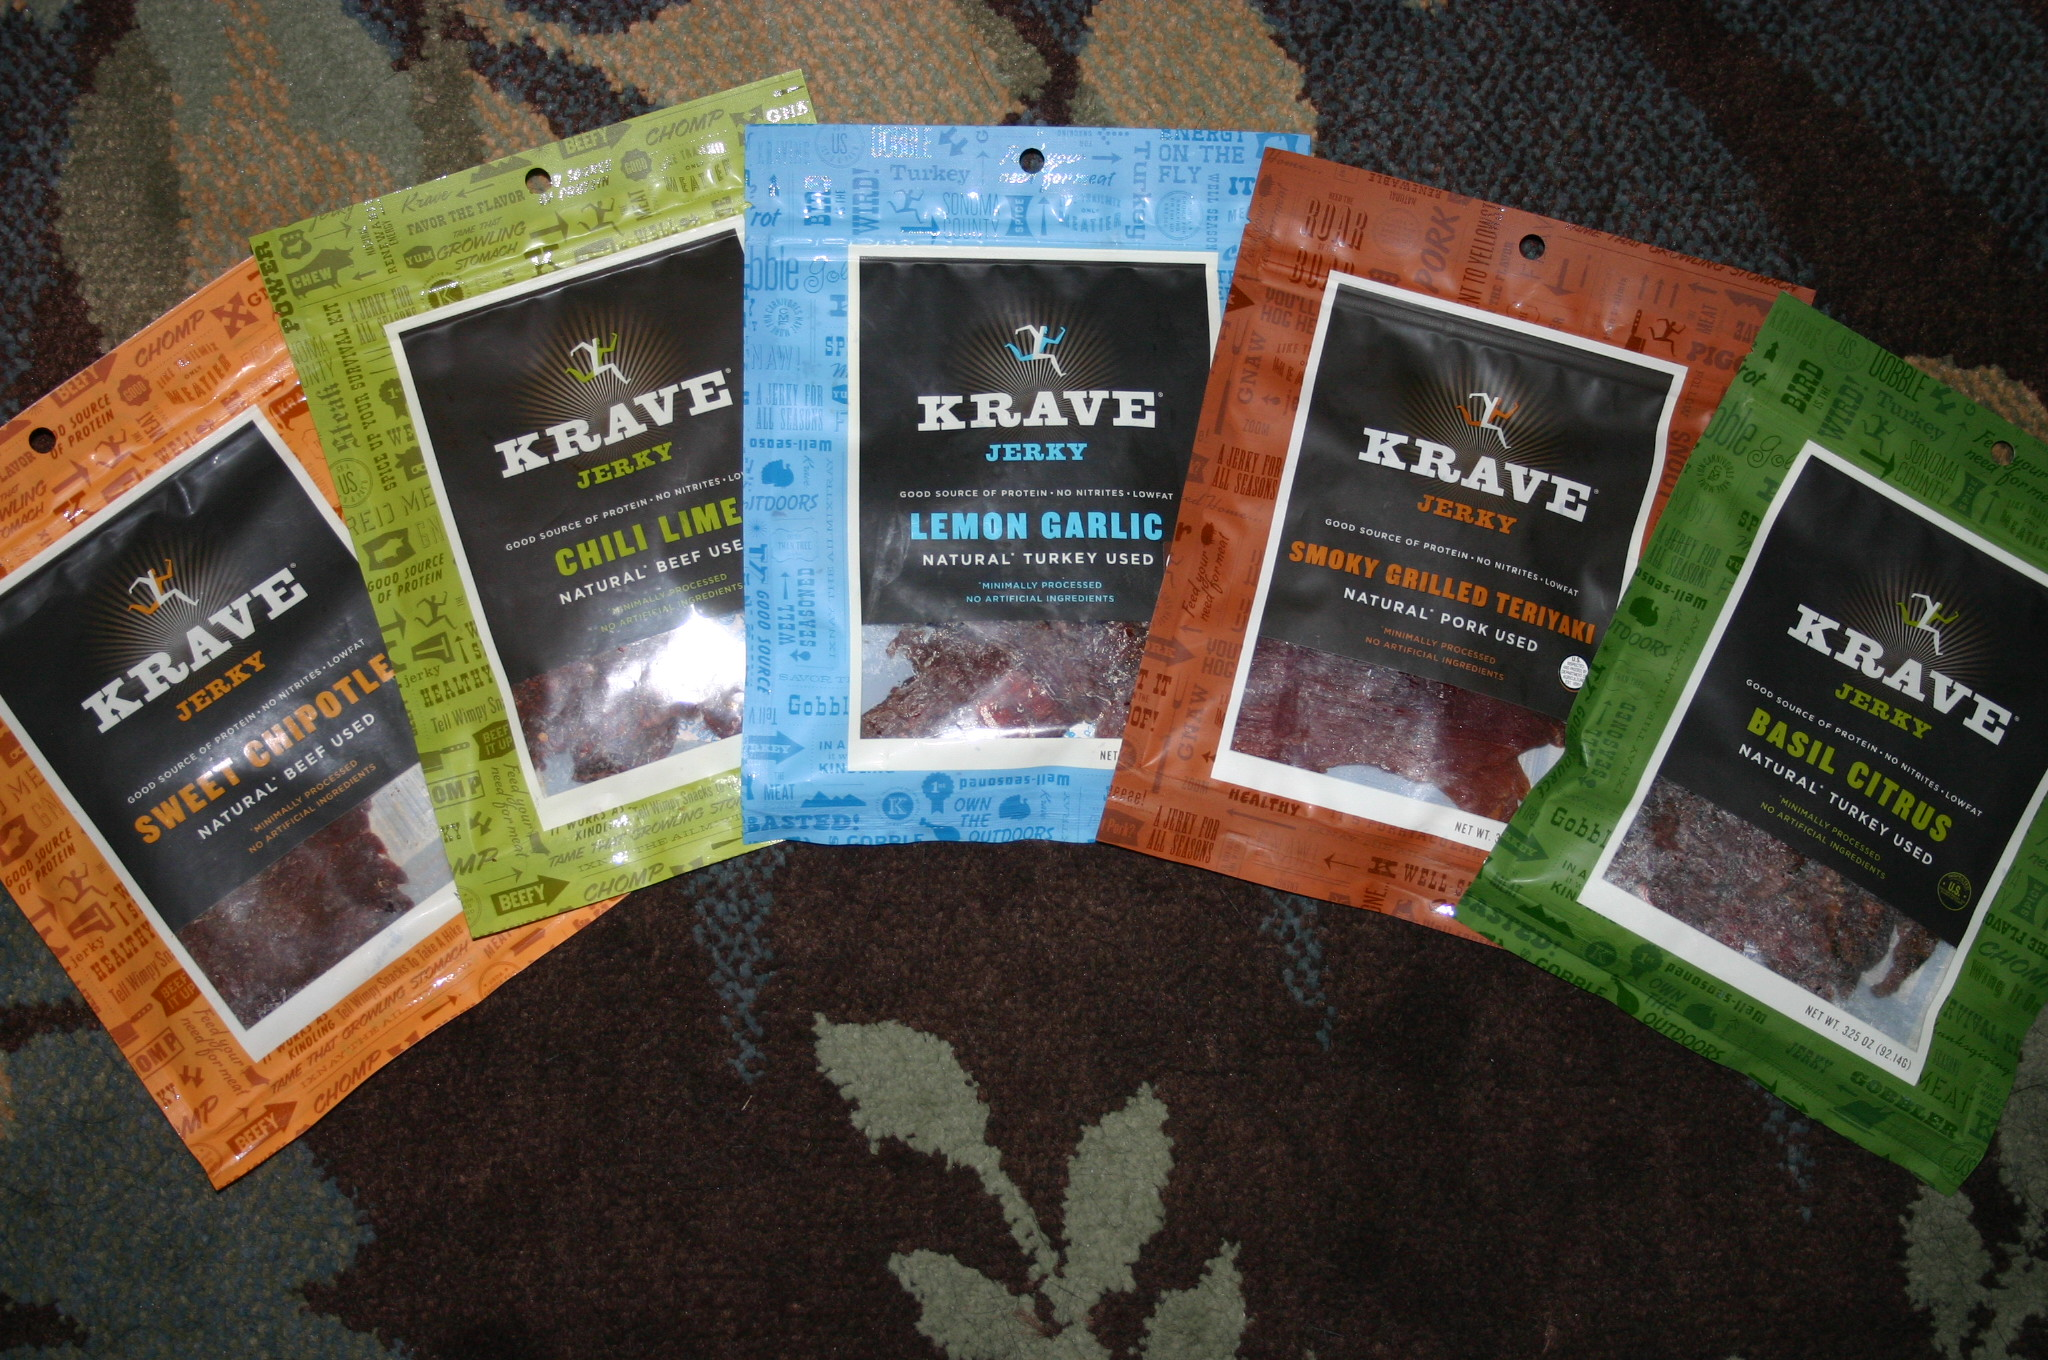 Matador beef jerky sweepstakes and contests